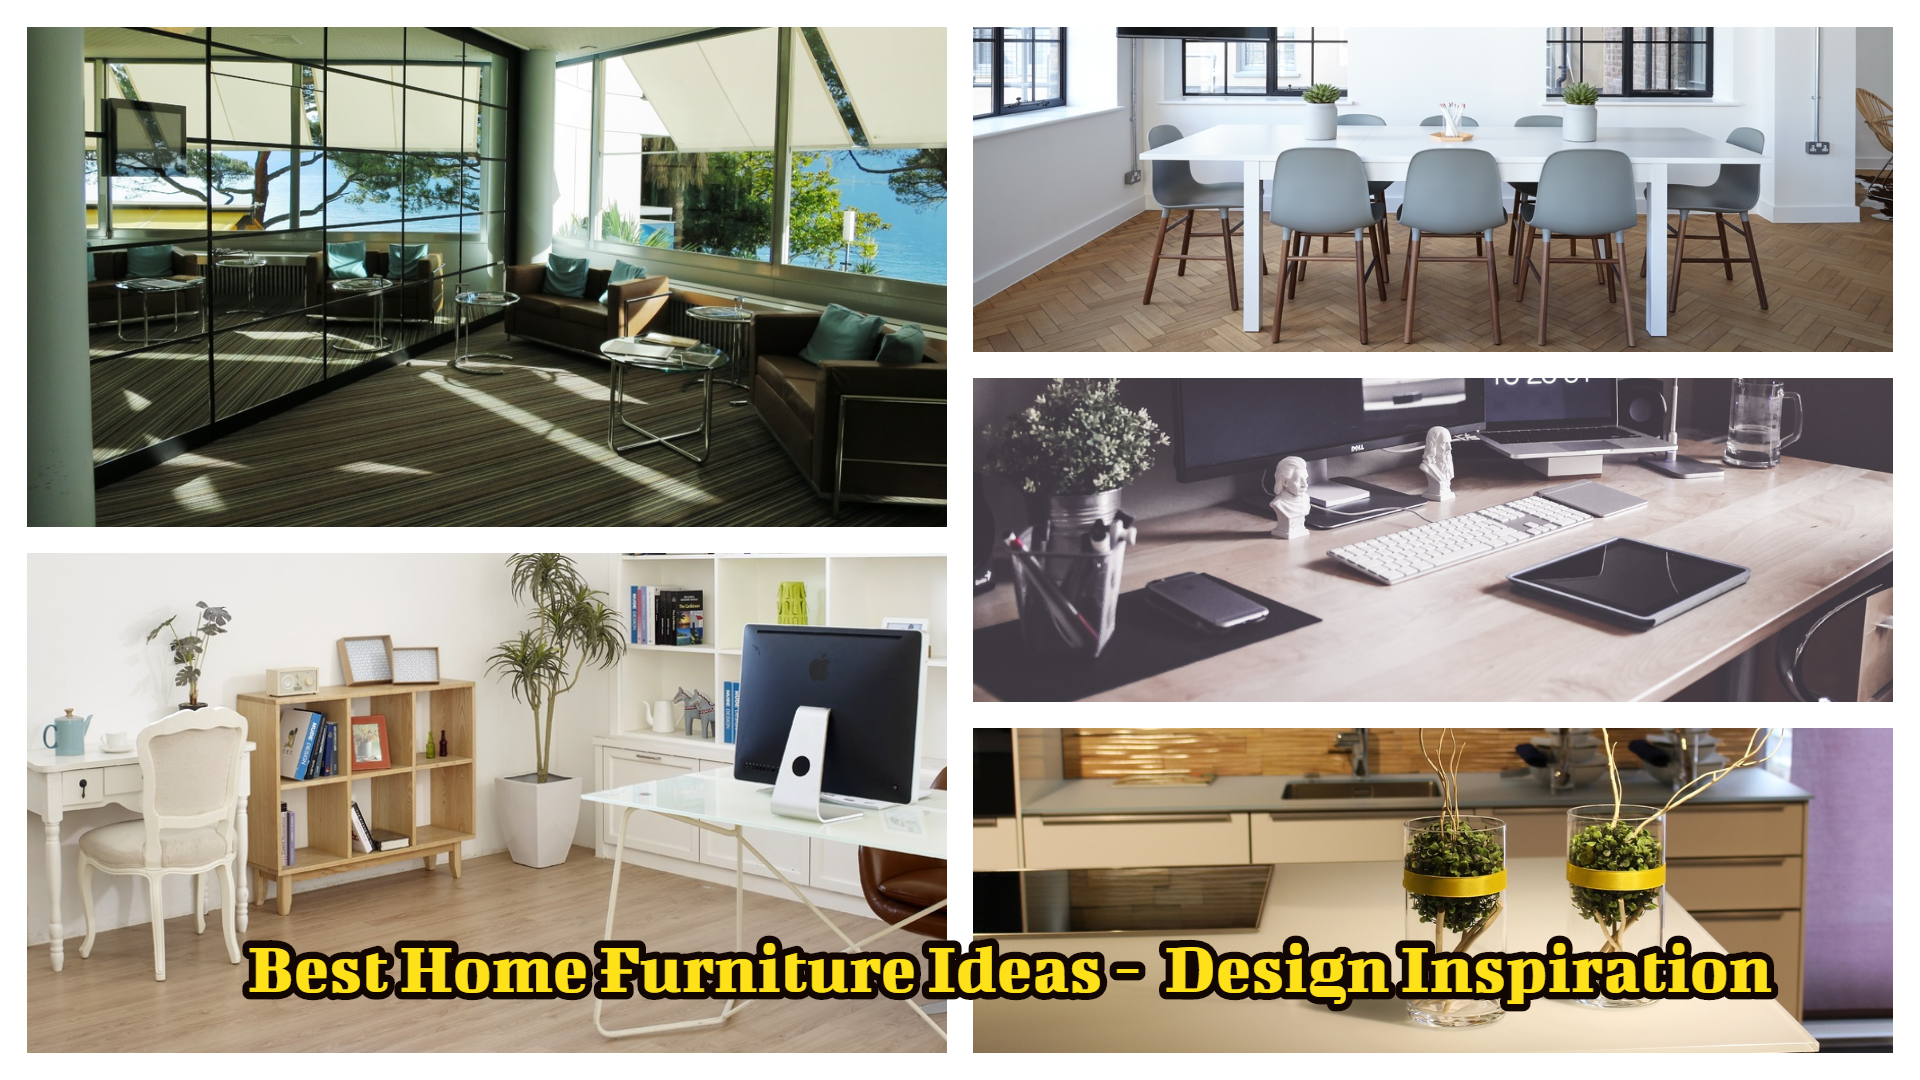 Home Furniture Ideas and Design